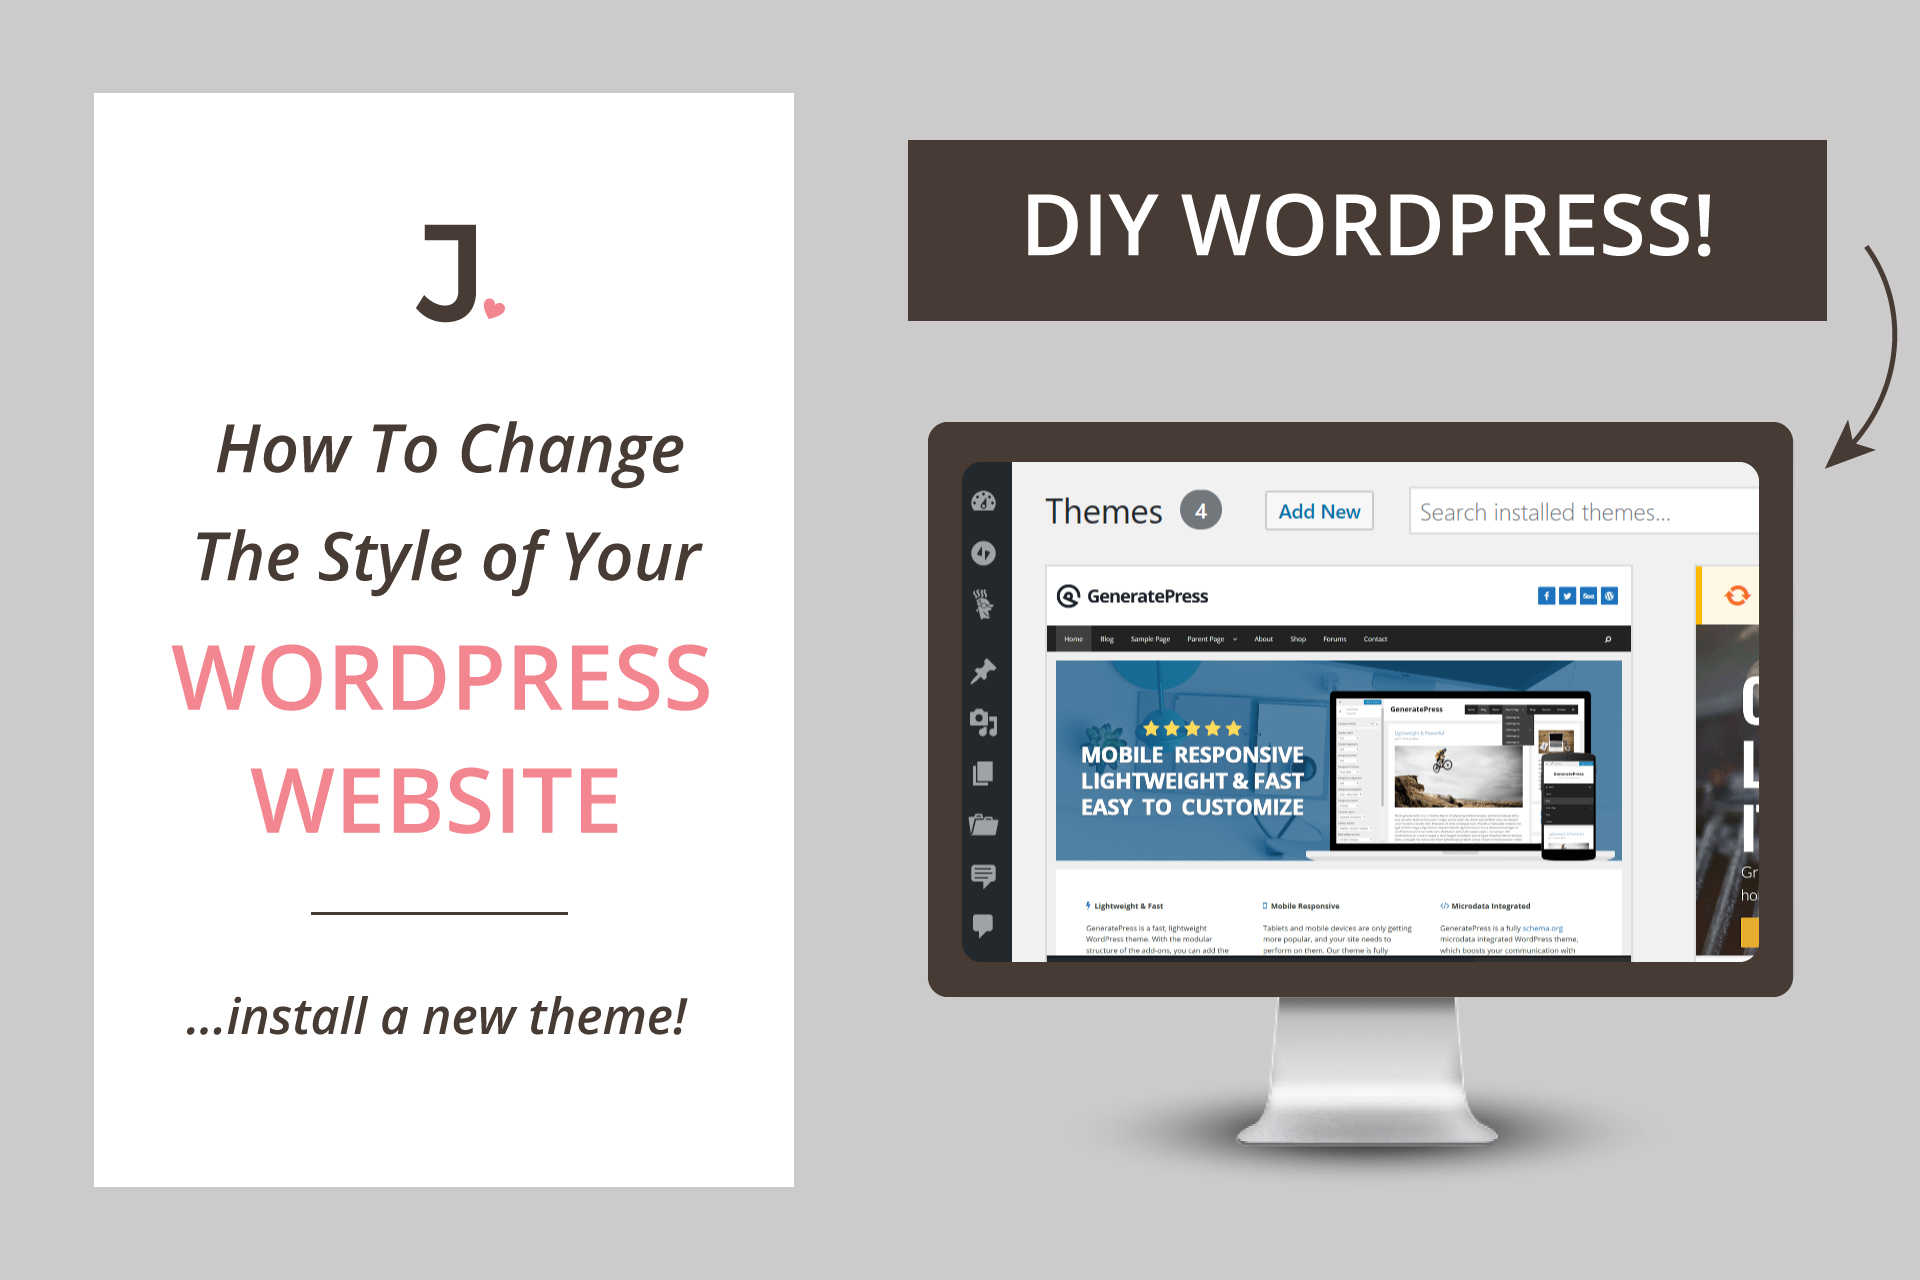 If you are new to WordPress and want to know how to install WordPress theme on your new site, keep reading because in this post I will show you how to instantly update the style of your website at Jennifer-Franklin.com.